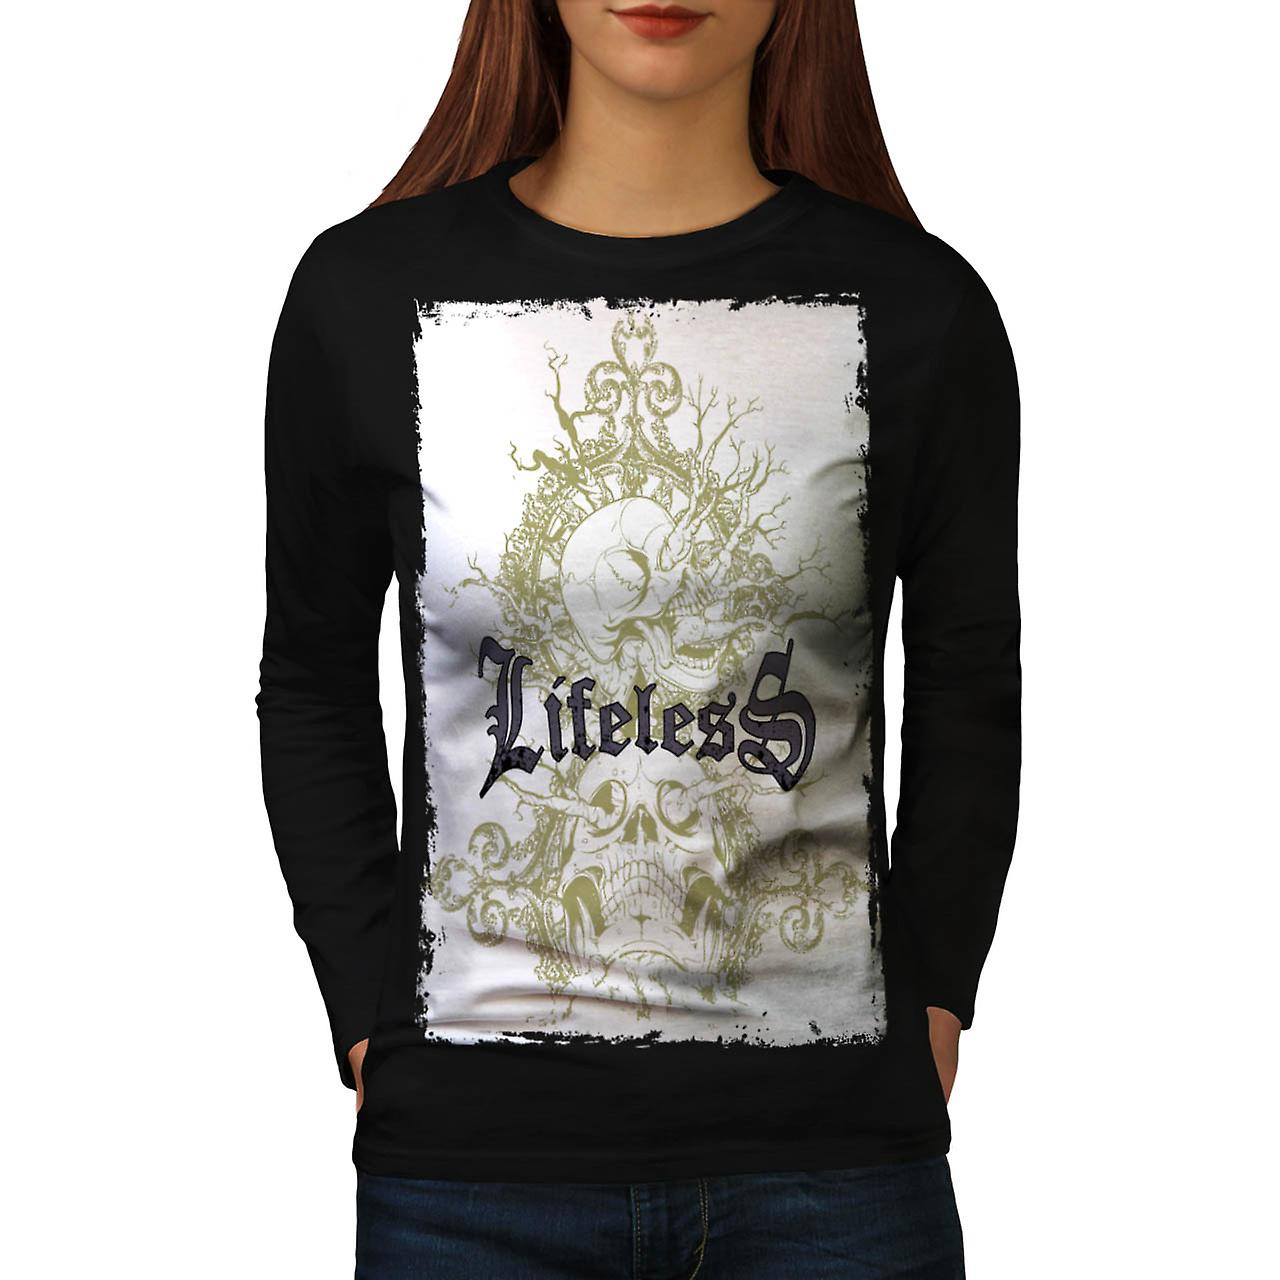 Lifeless Gothic Skull Women Black Long Sleeve T-shirt | Wellcoda